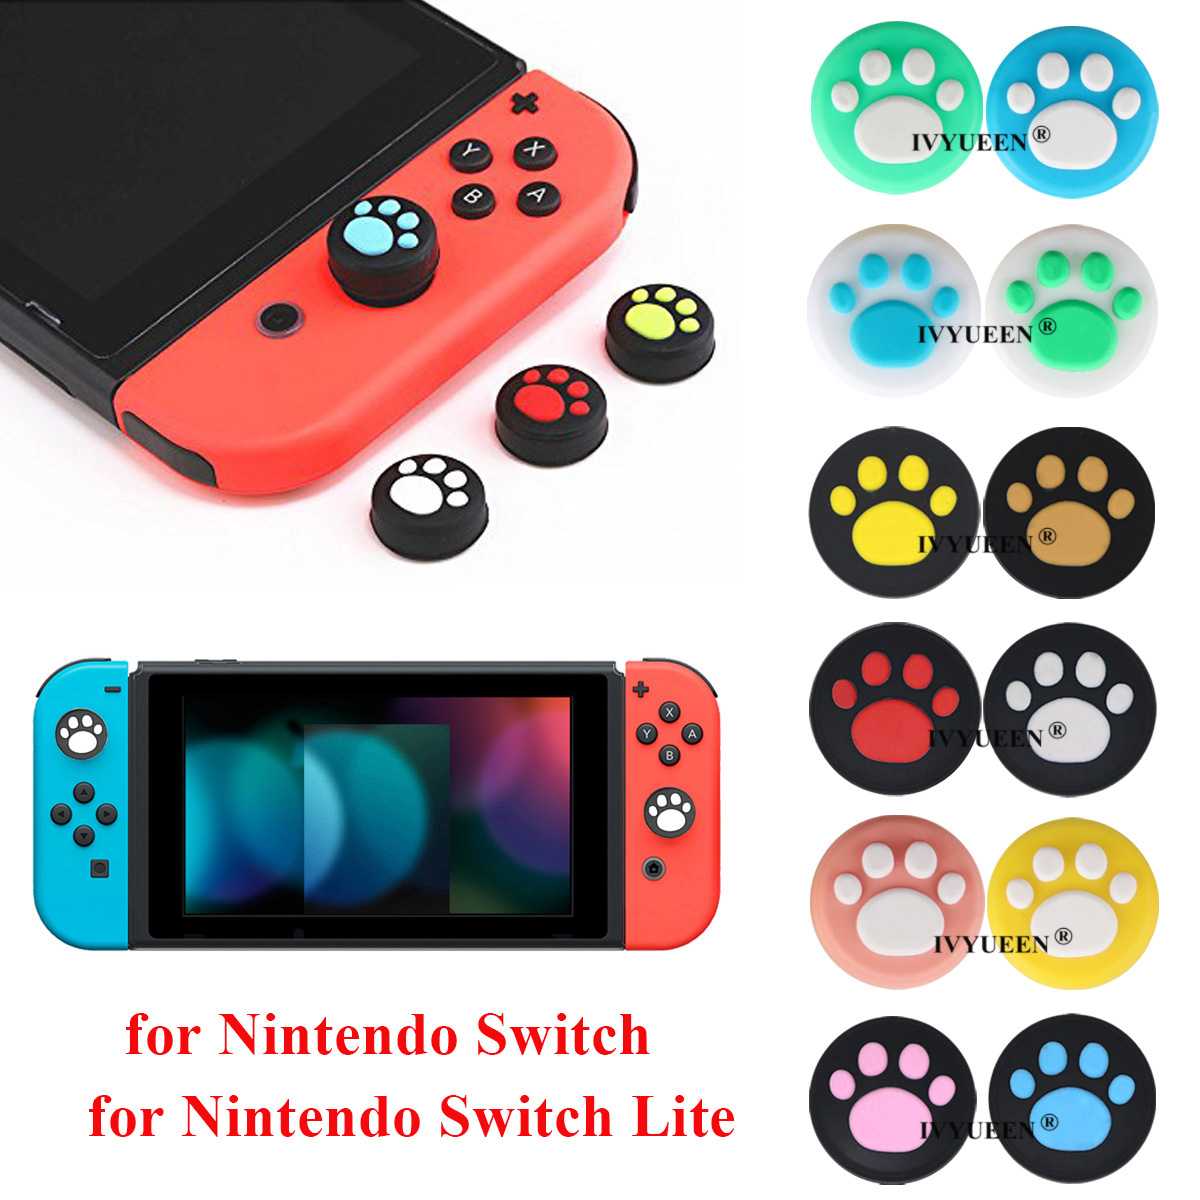 IVYUEEN 4 pcs Silicone Thumb Grips Cover for Nintend Switch NS Lite Joy Con Analog Stick Caps Skin for JoyCon Joystick Grip(China)